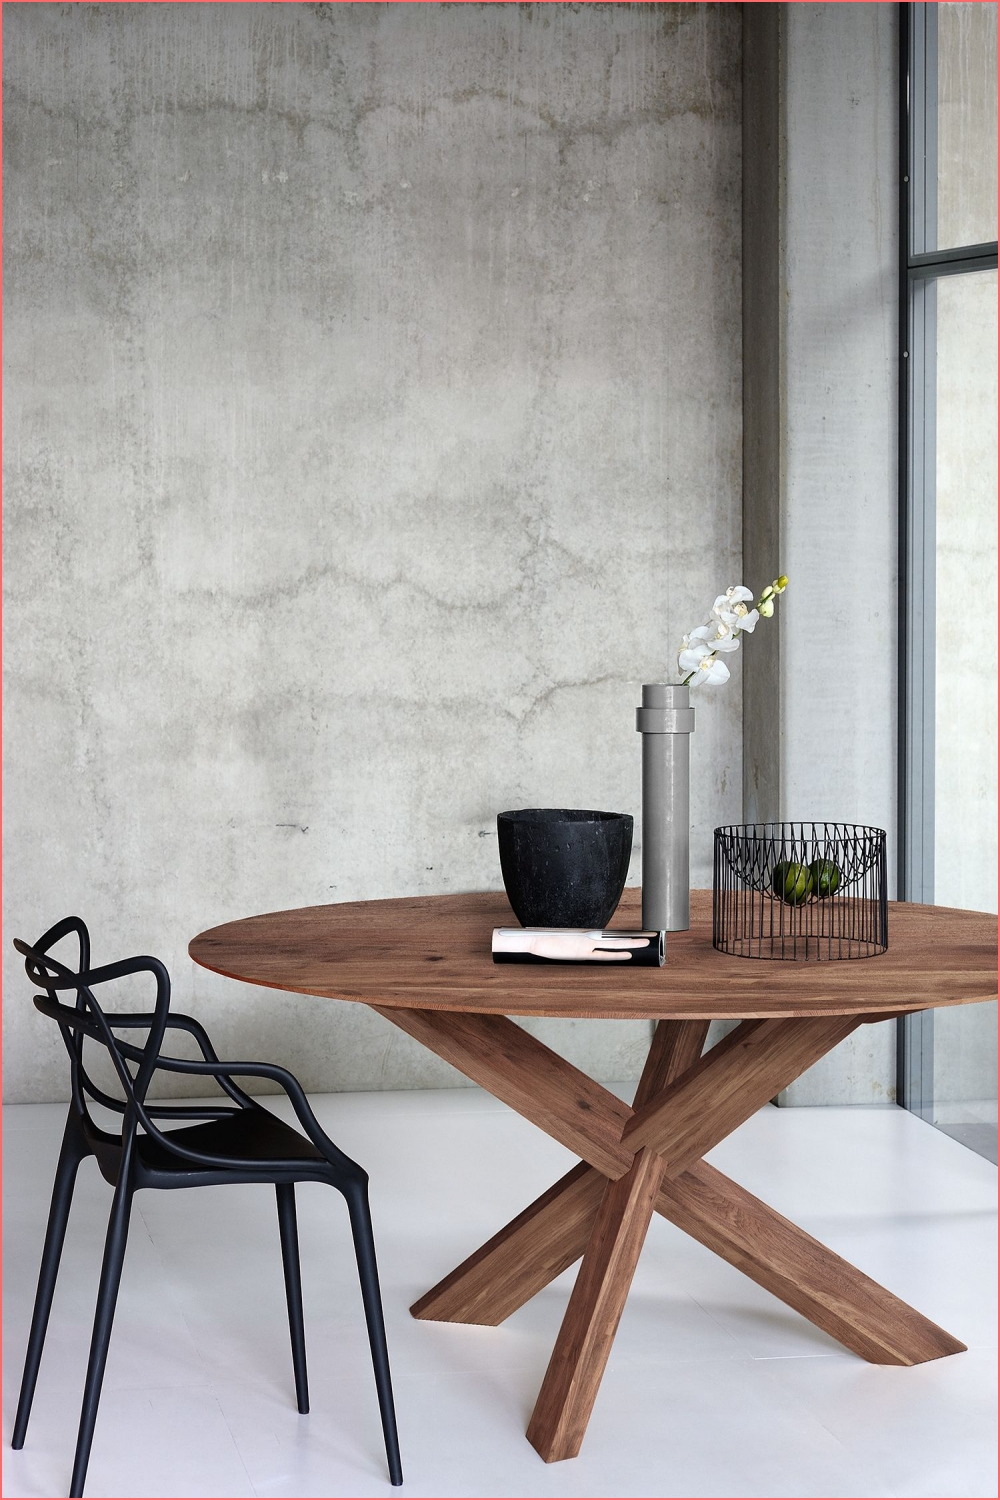 Circle Dining Table in 2020 on dining table design on dining table design post on 2020-11-24 16:29:04